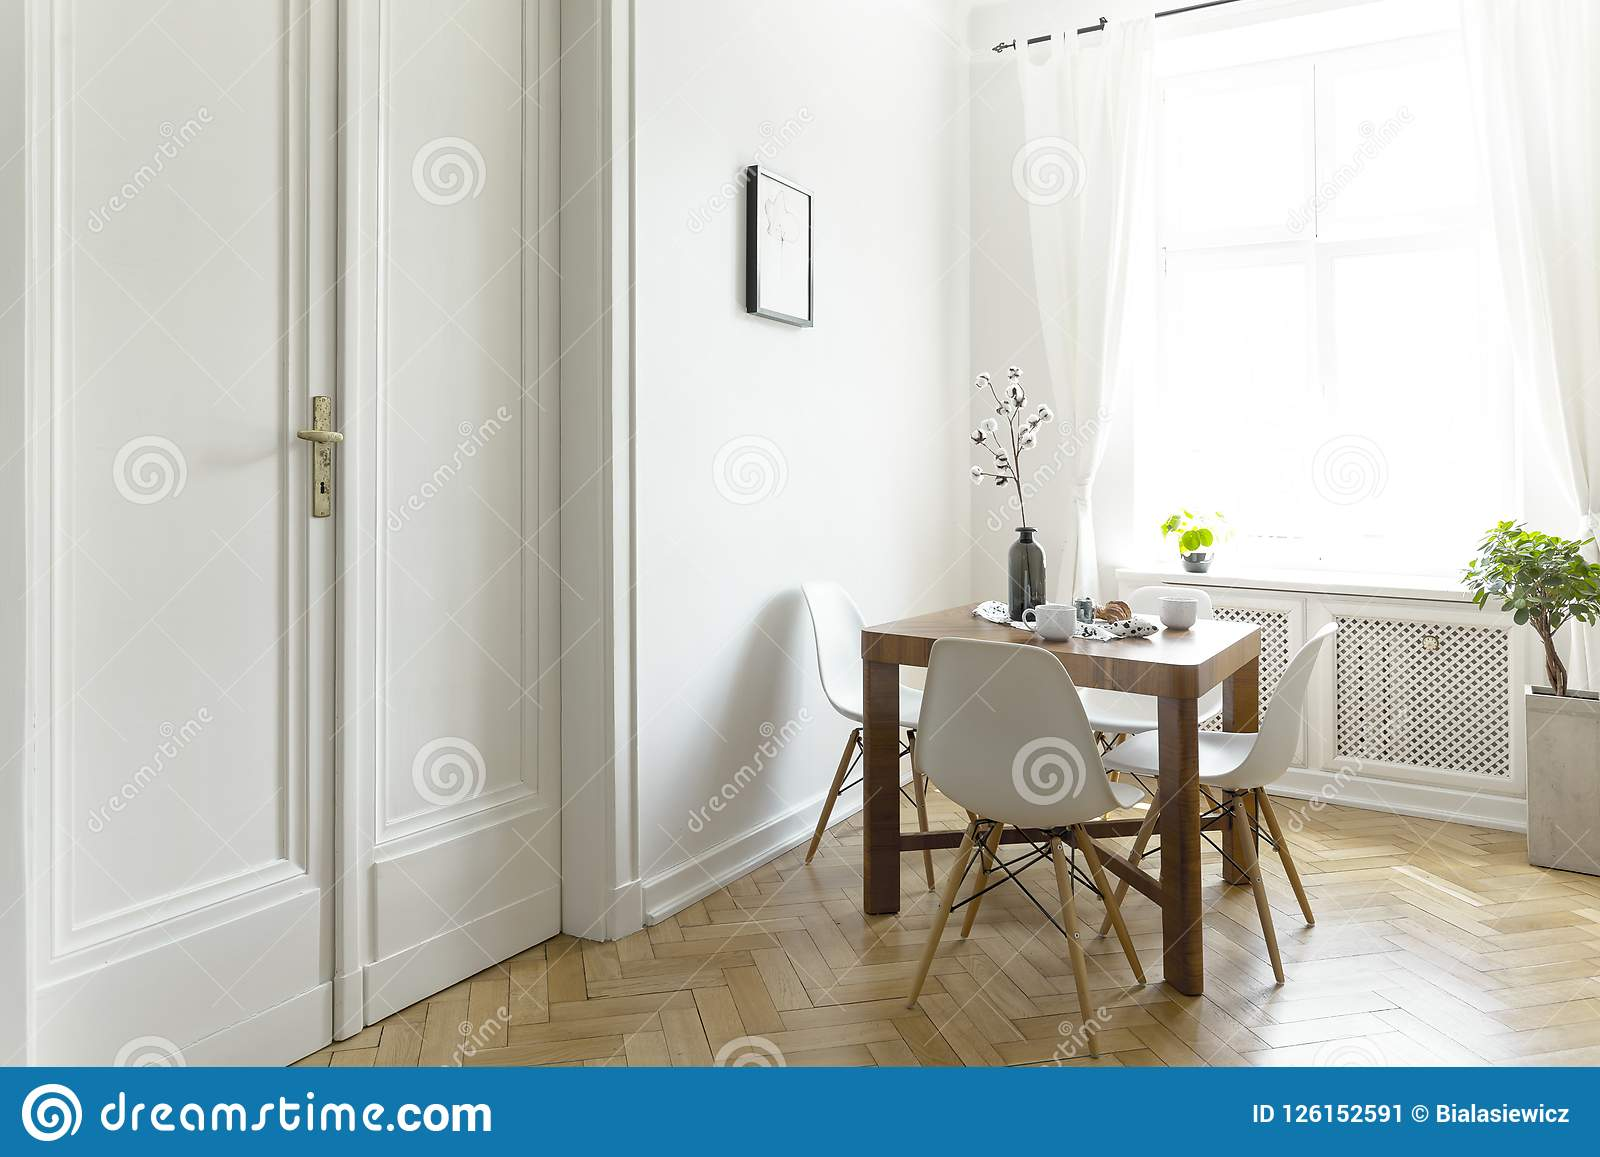 A Small Wooden Dining Table With Chairs In Sunny Room Interior White Walls